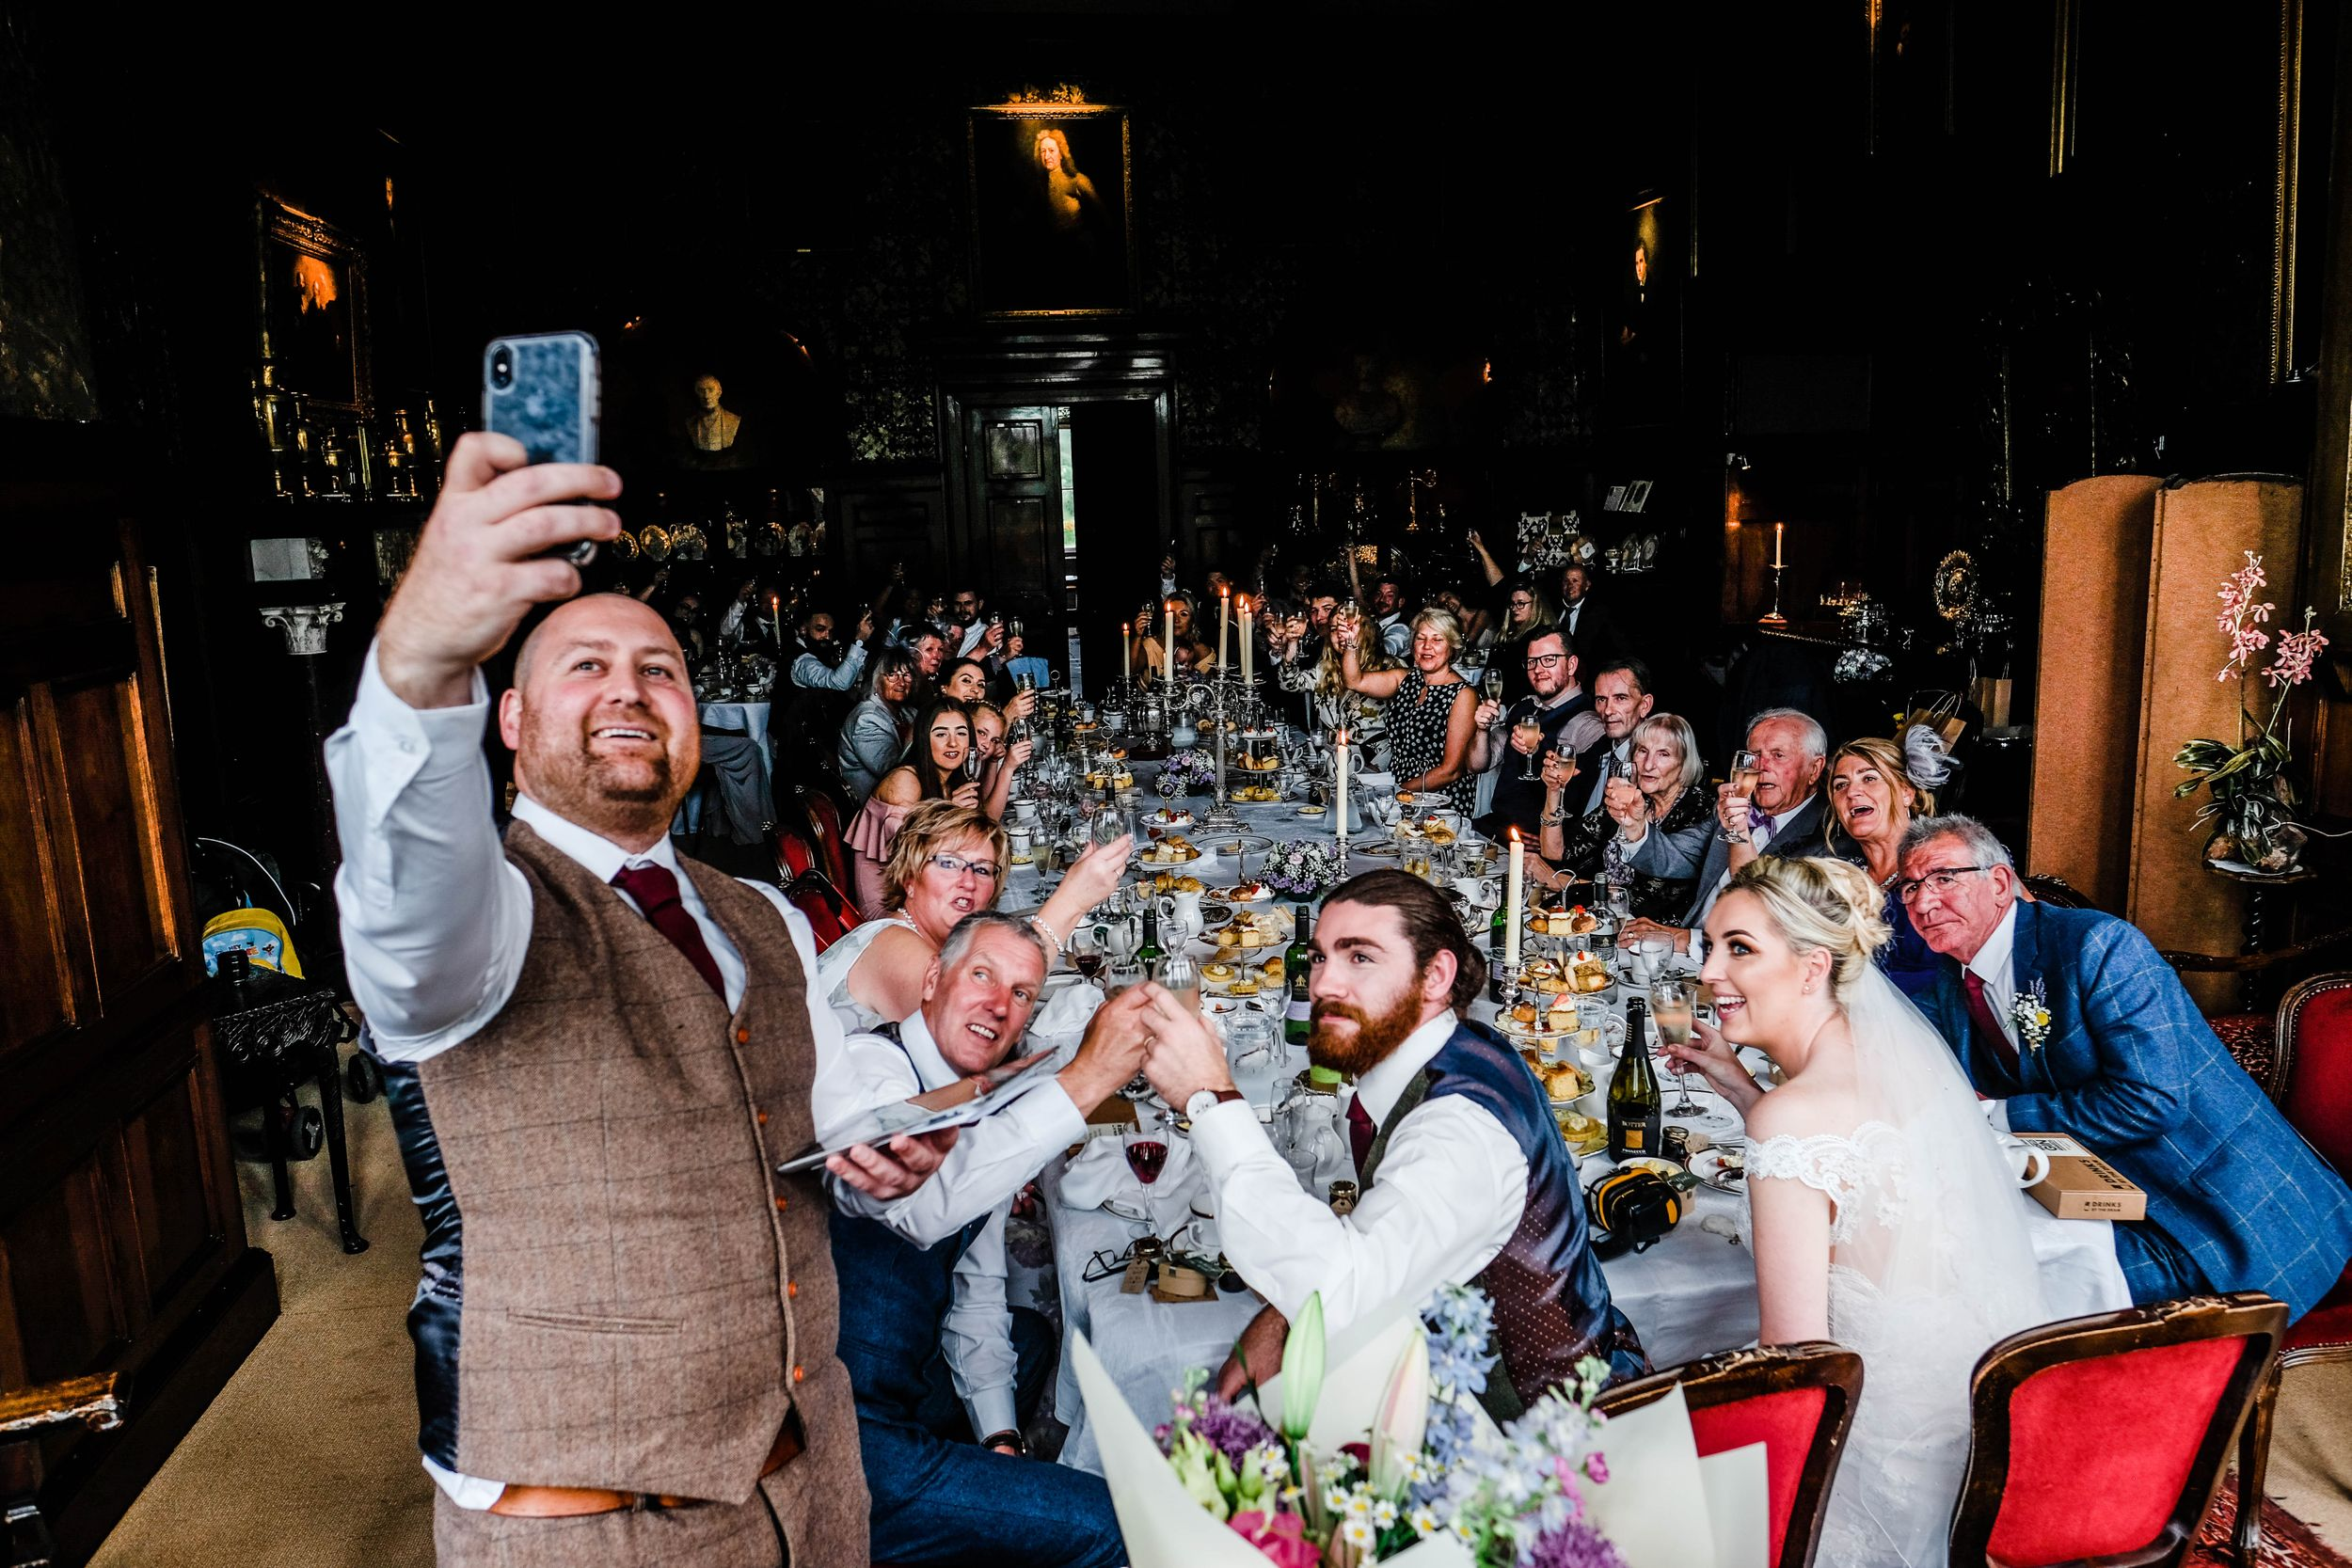 Chelsea Cannar Photography - Lake district wedding photographer, natural and relaxed coverage  - Wedding selfie